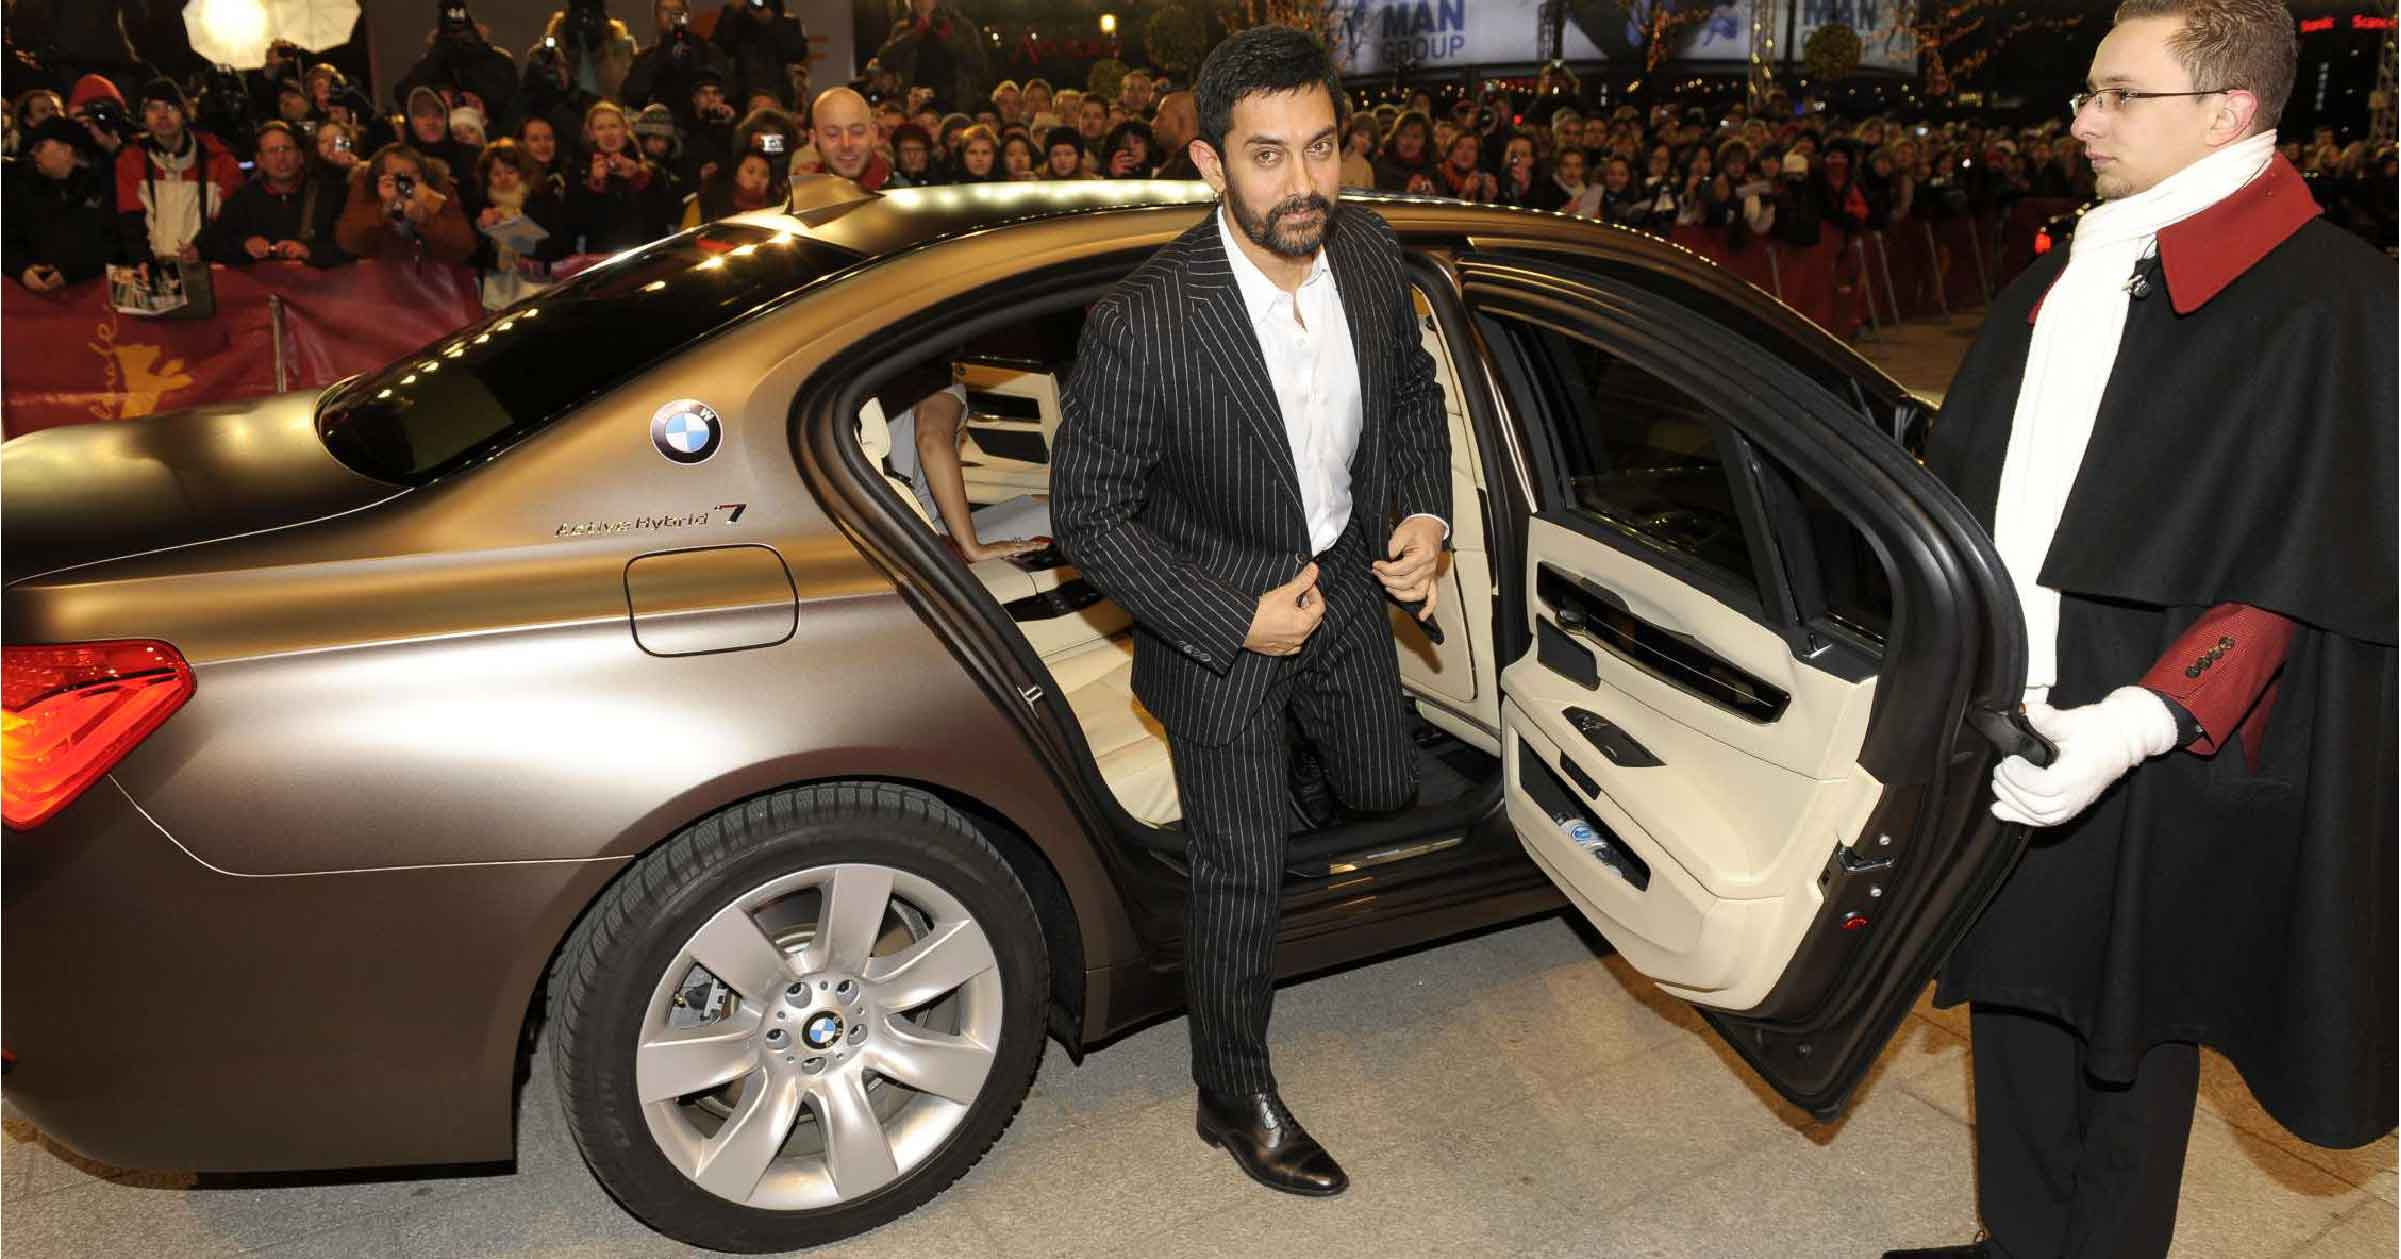 2021 Aamir Khan Net Worth | Income, Salary, Property | Biography - One Roof  For All